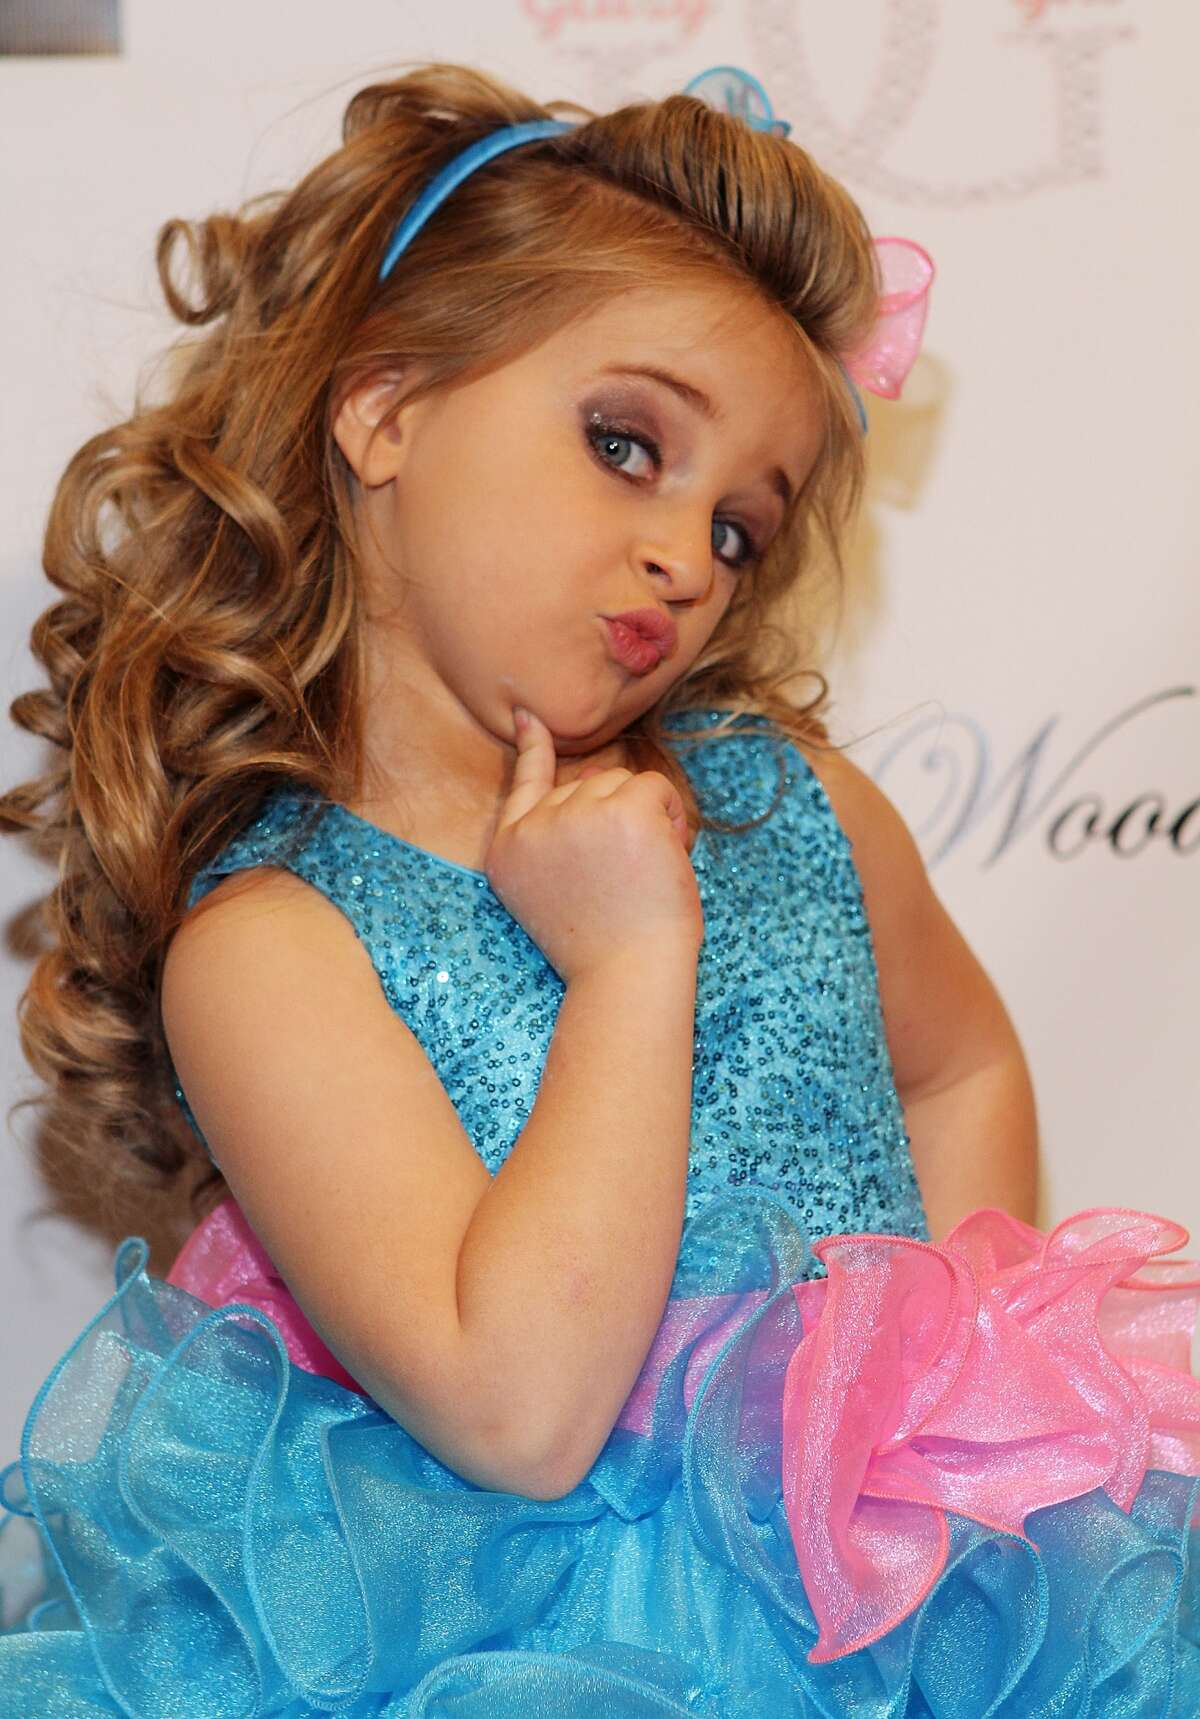 """Offstage, controversy surrounding """"Toddlers and Tiaras"""" star Isabella Barrett made headlines. Her mom sued media outlets in 2012, accusing them of sexualizing Isabella. Also that year, she reportedly criticized rival Paisley Dickey, calling her outfit a """"hooker"""" costume."""